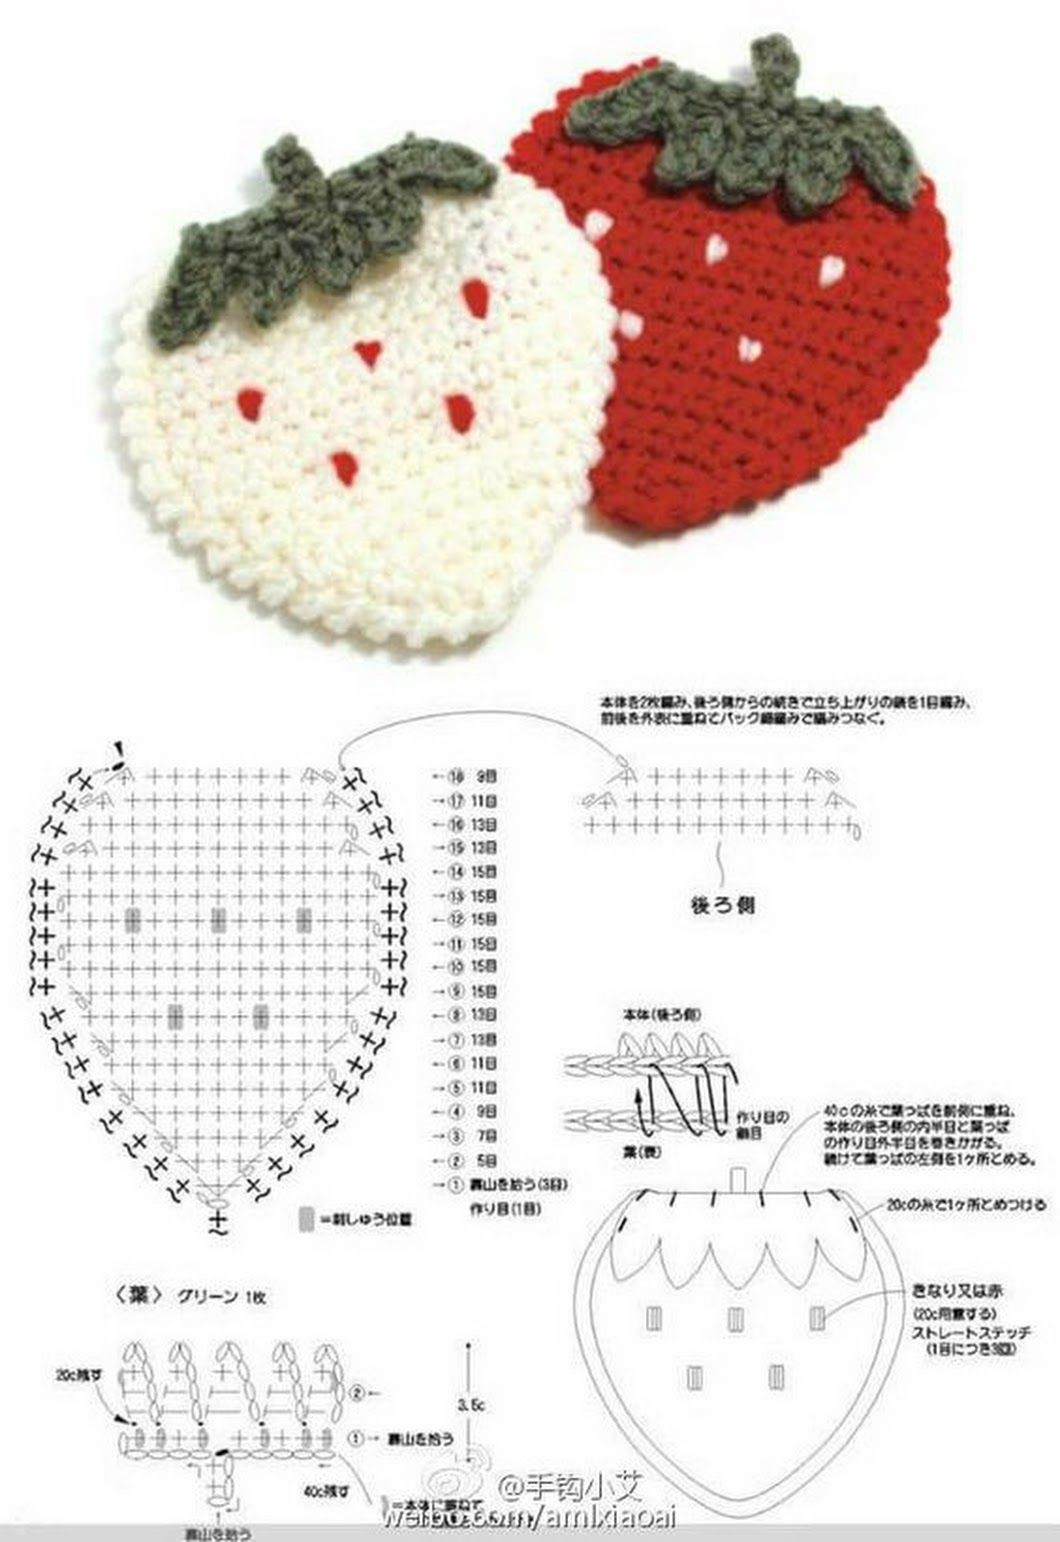 Keuken Haak Pin Van Chen Op 蔬果 Crochet Strawberry Crochet En Crochet Flowers